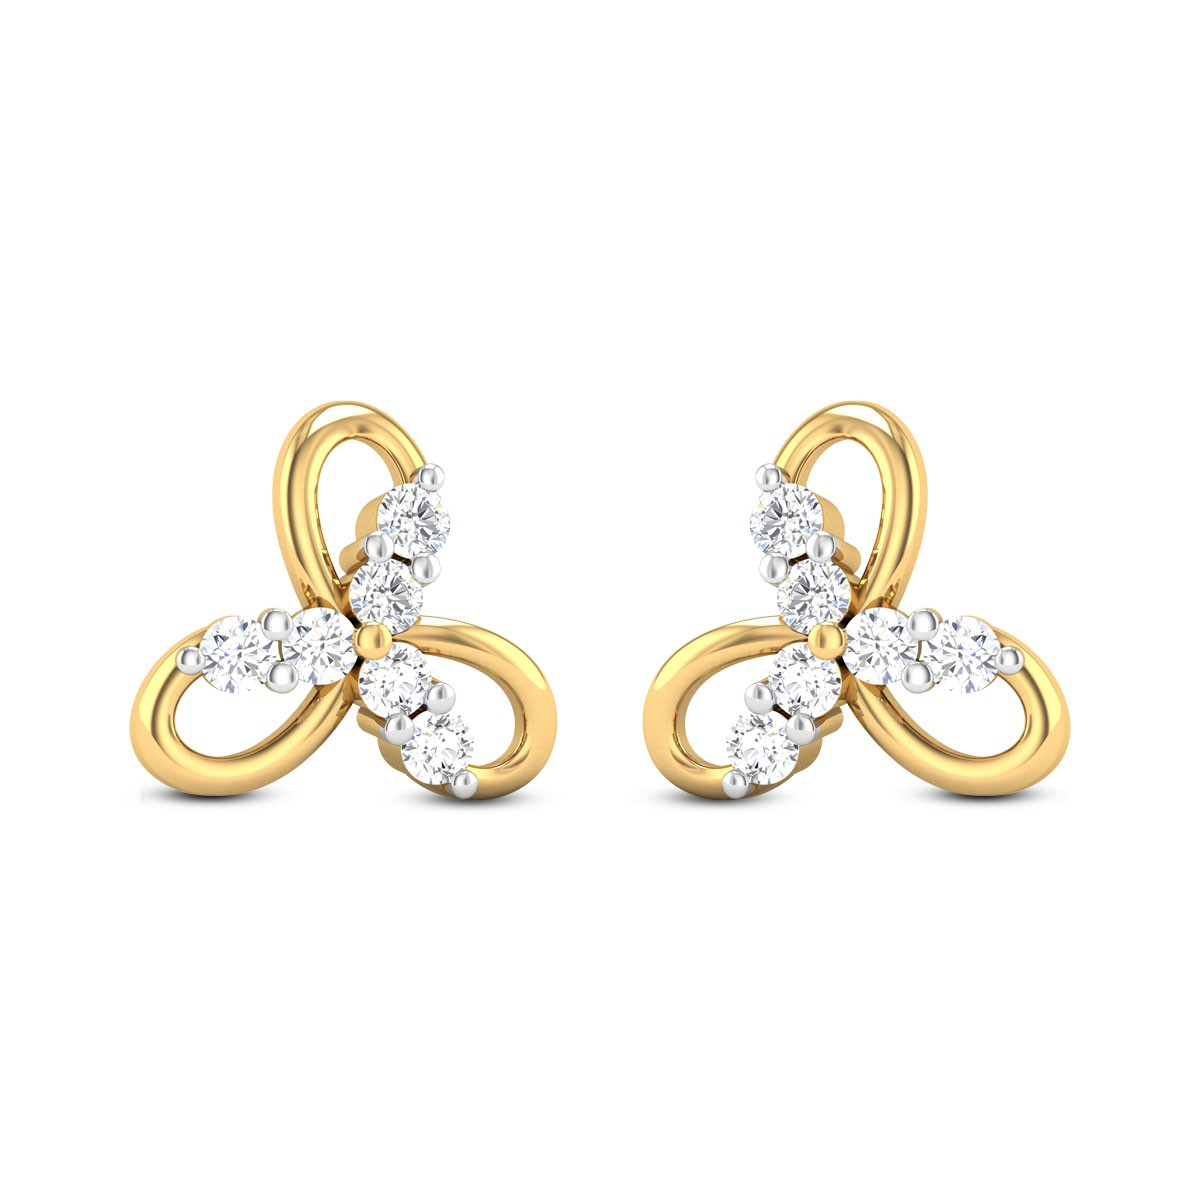 Genevieve Collection Diamond Earrings